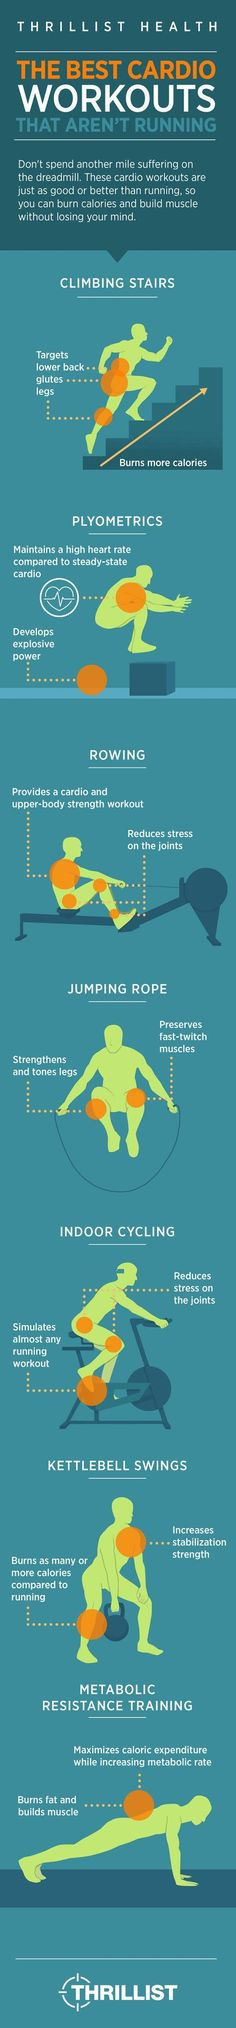 cardio workout infographic pin